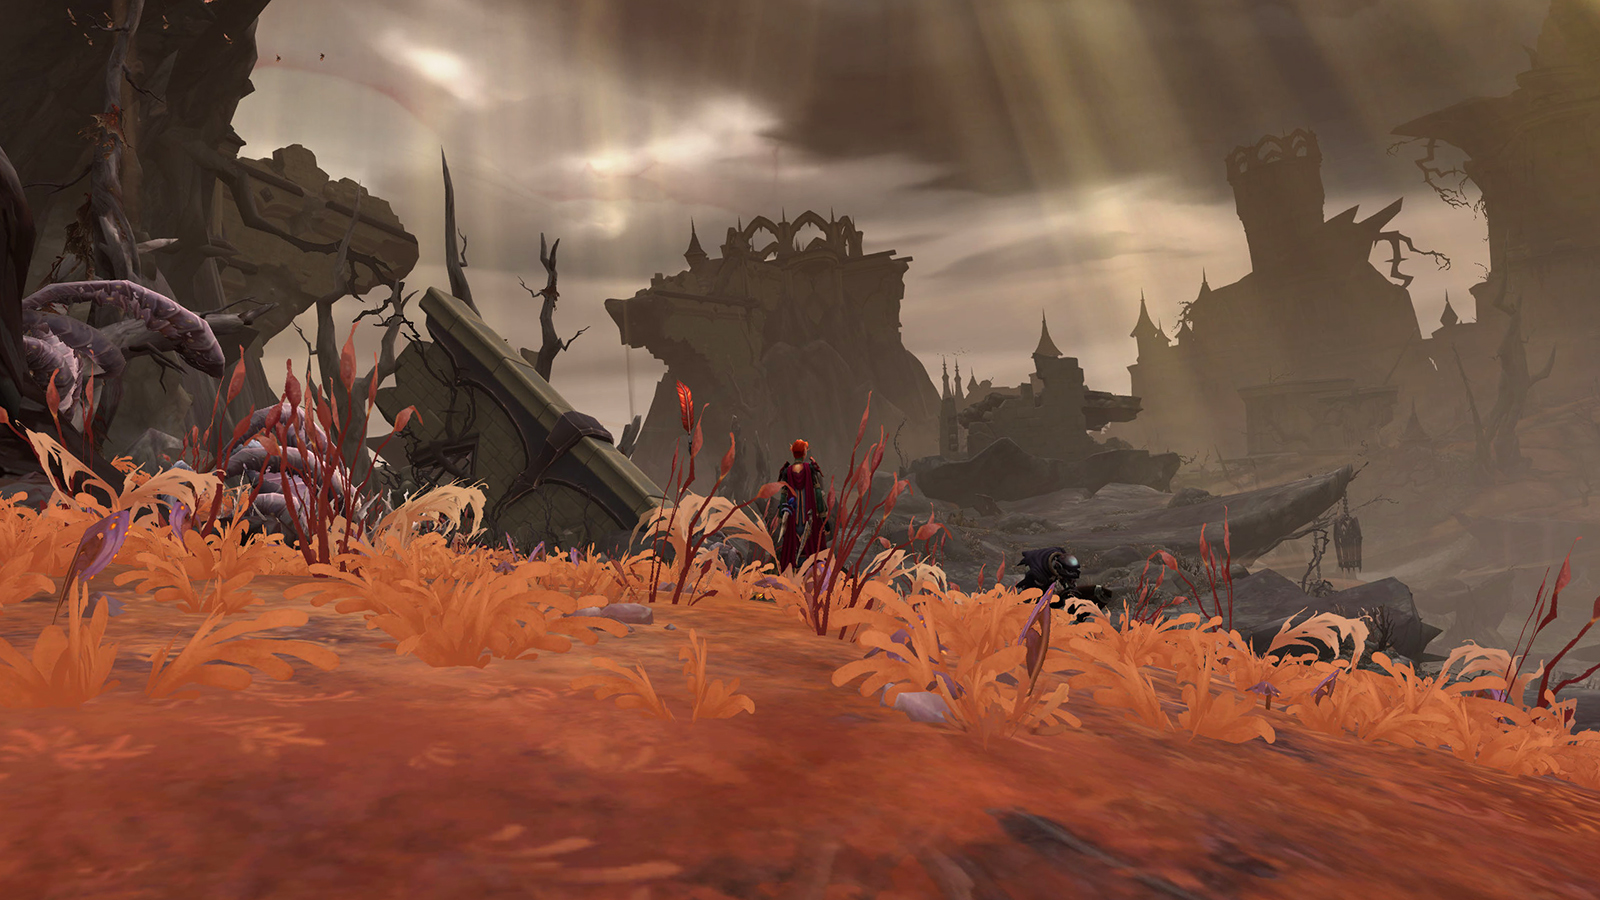 Revendreth in WoW Shadowlands, with craggy cliffs and dried grass